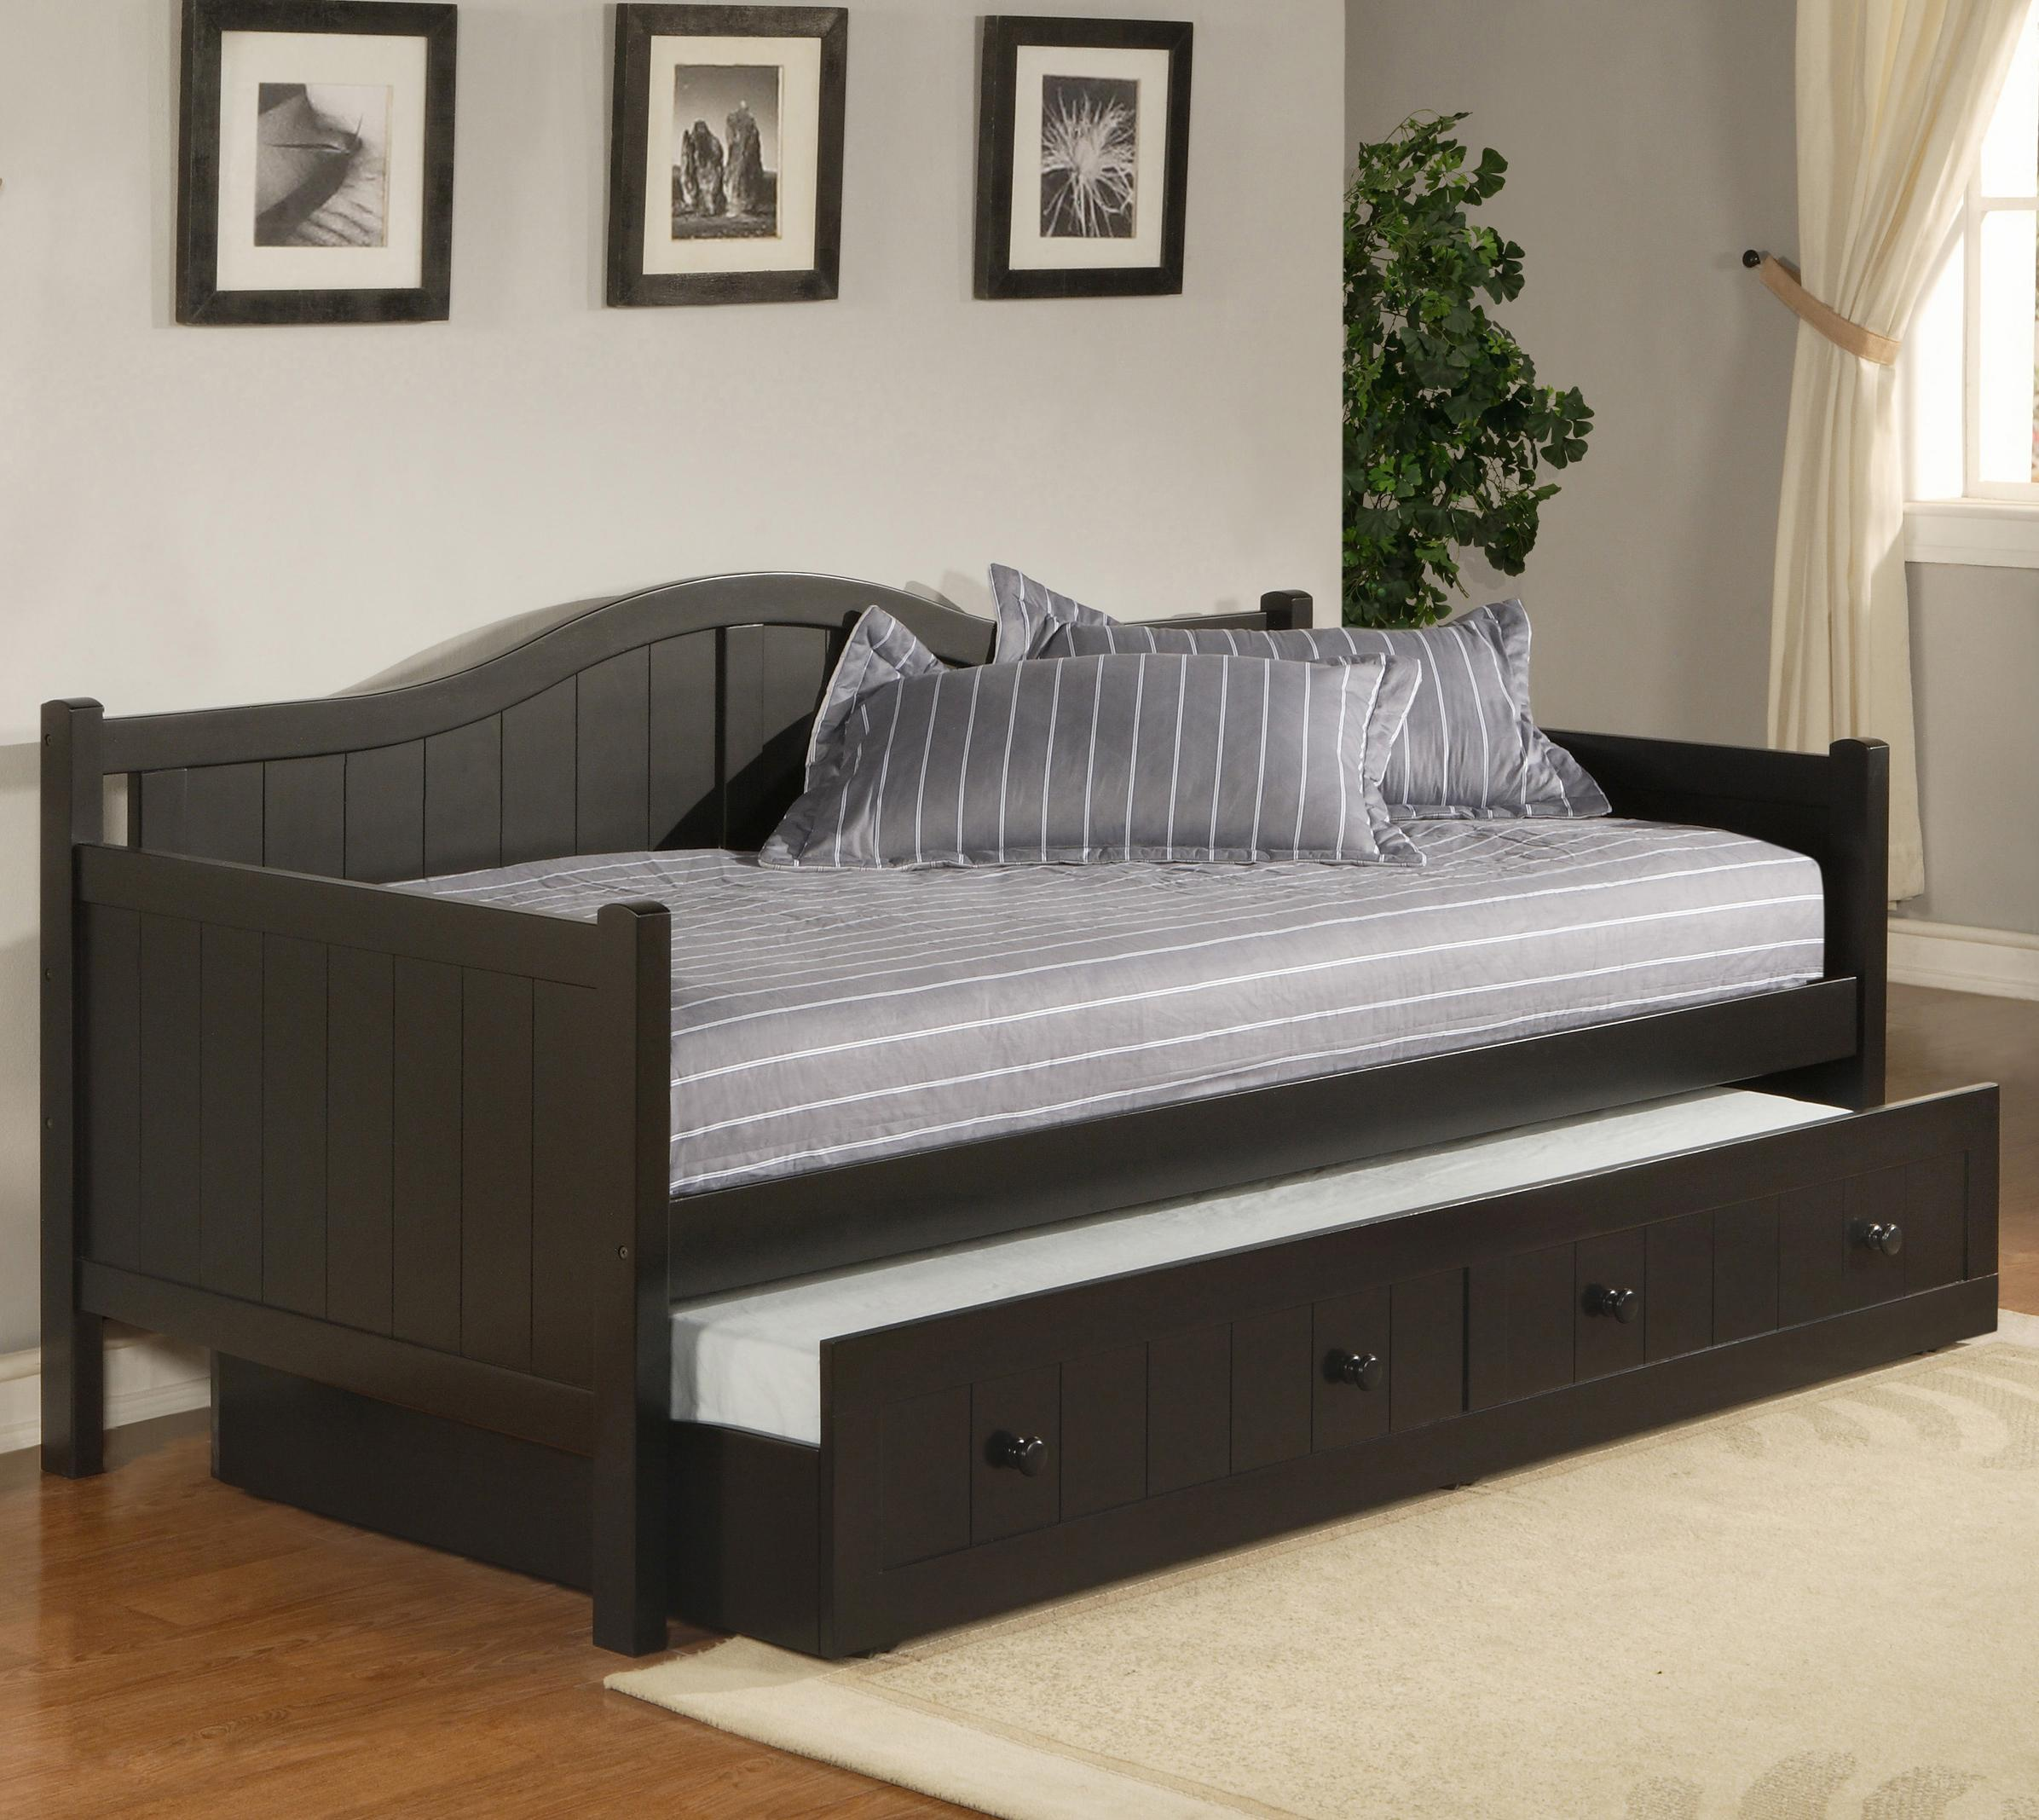 Hillsdale Daybeds Twin Staci Daybed with Trundle - Item Number: 1572DBT